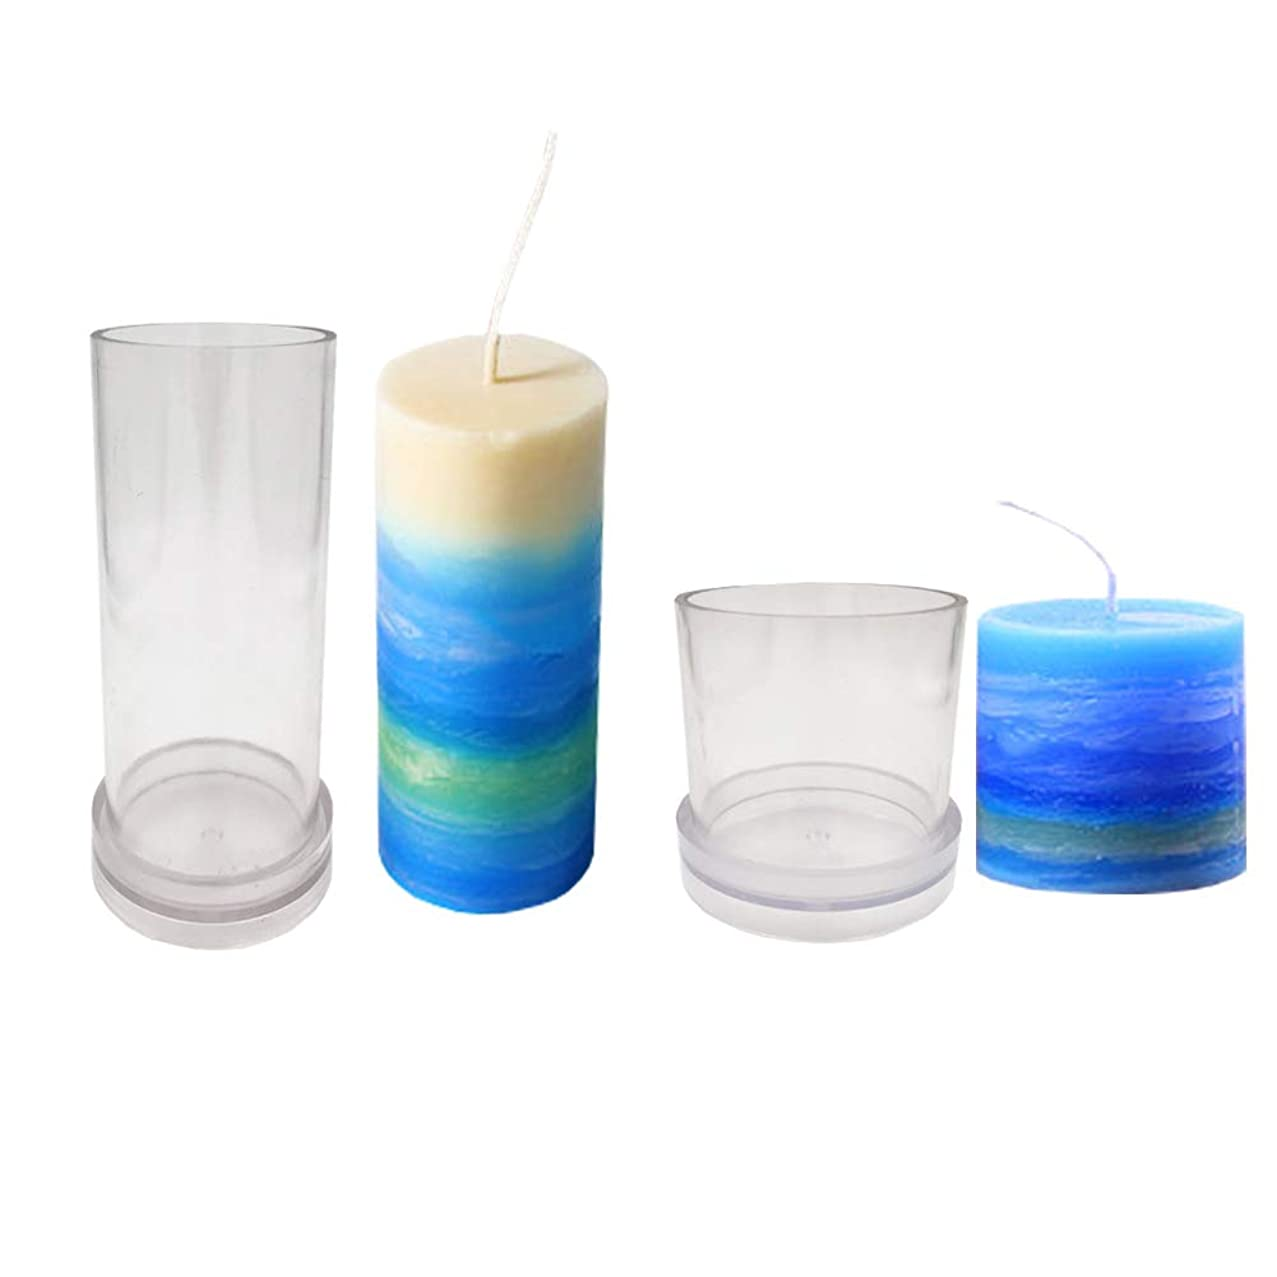 Candle Molds for Candle Making Plastic Pillar Candle Making Kit Large Cylinder Rib Candle Making Molds DIY Candle Making Supplies Set of 2 PCS